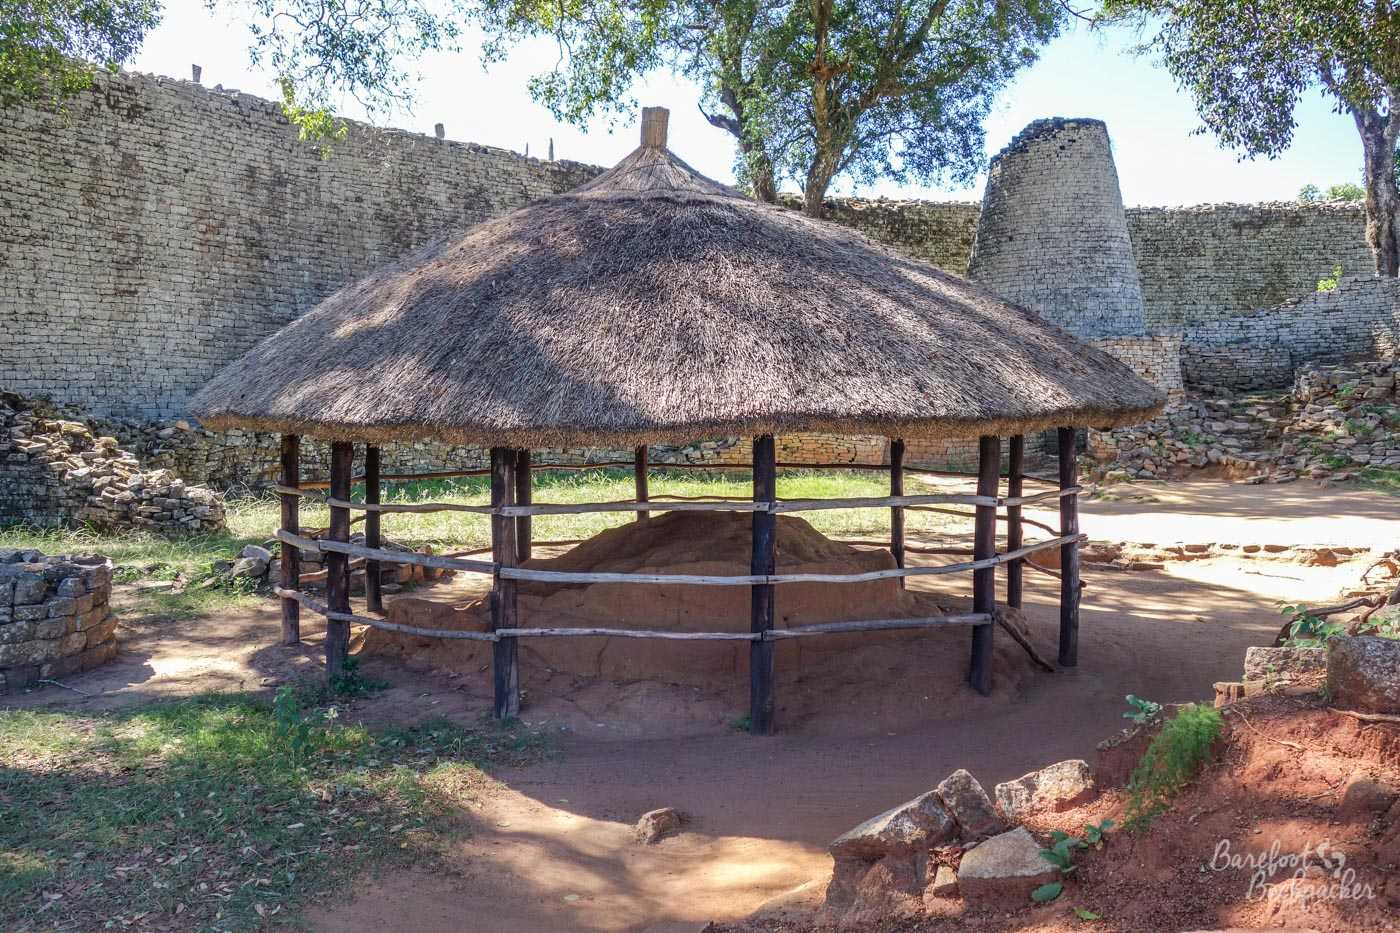 Stone ruins in the Great Enclosure complex at Great Zimbabwe. A meeting or heating rondavel in the foreground, and the large conical tower behind